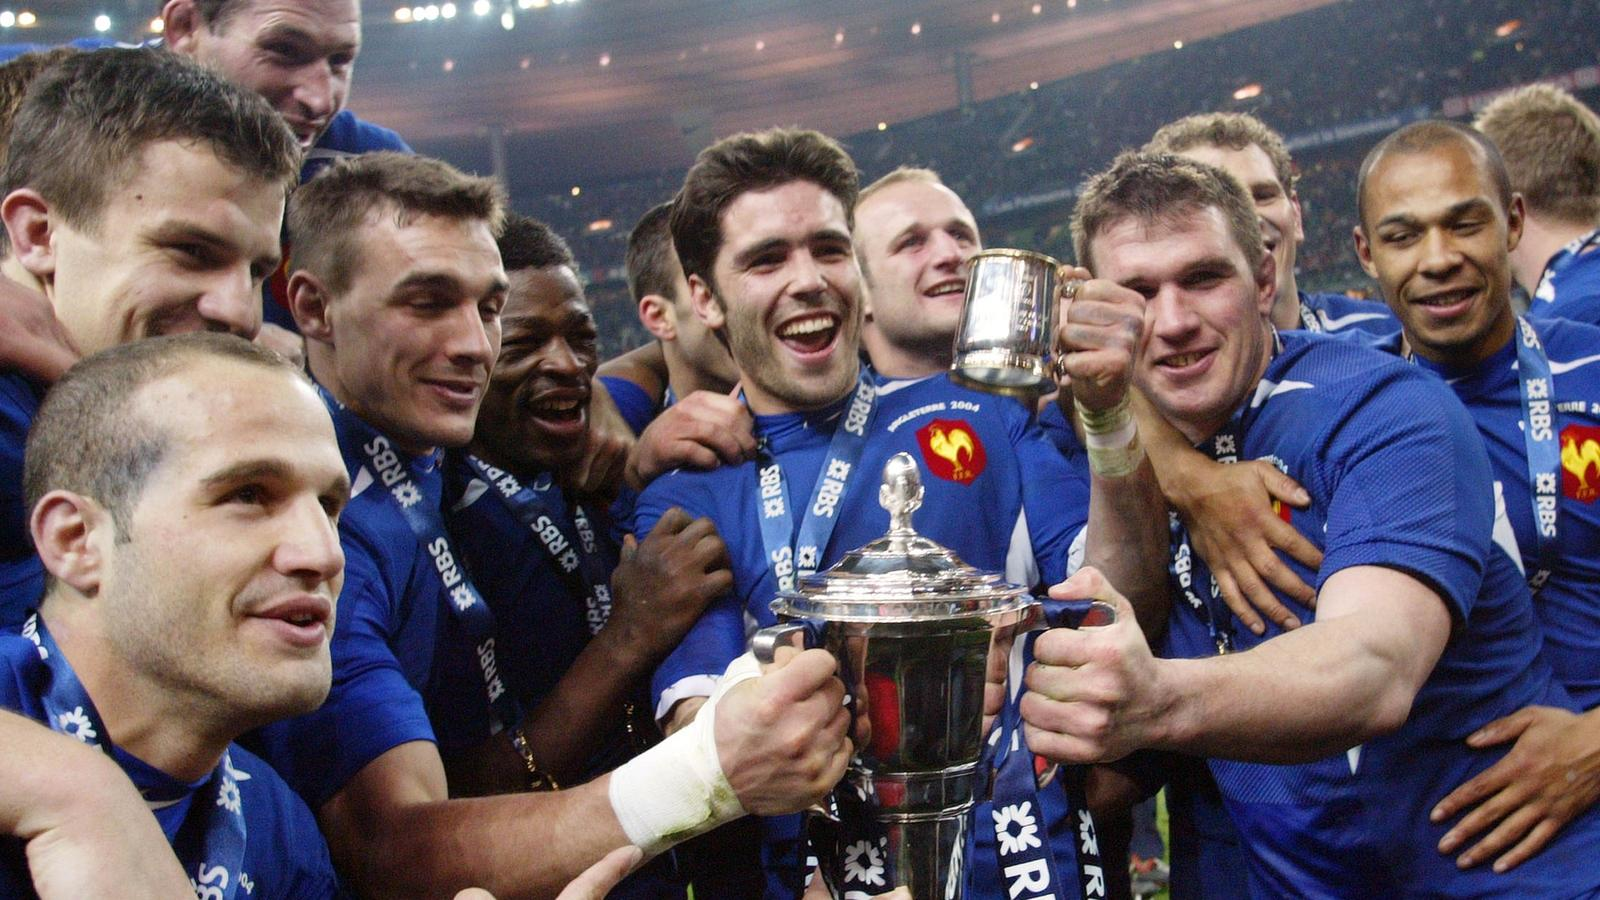 Histoires de grand chelem 6 nations 2010 rugby rugbyrama - Rugby coupe des 6 nations ...